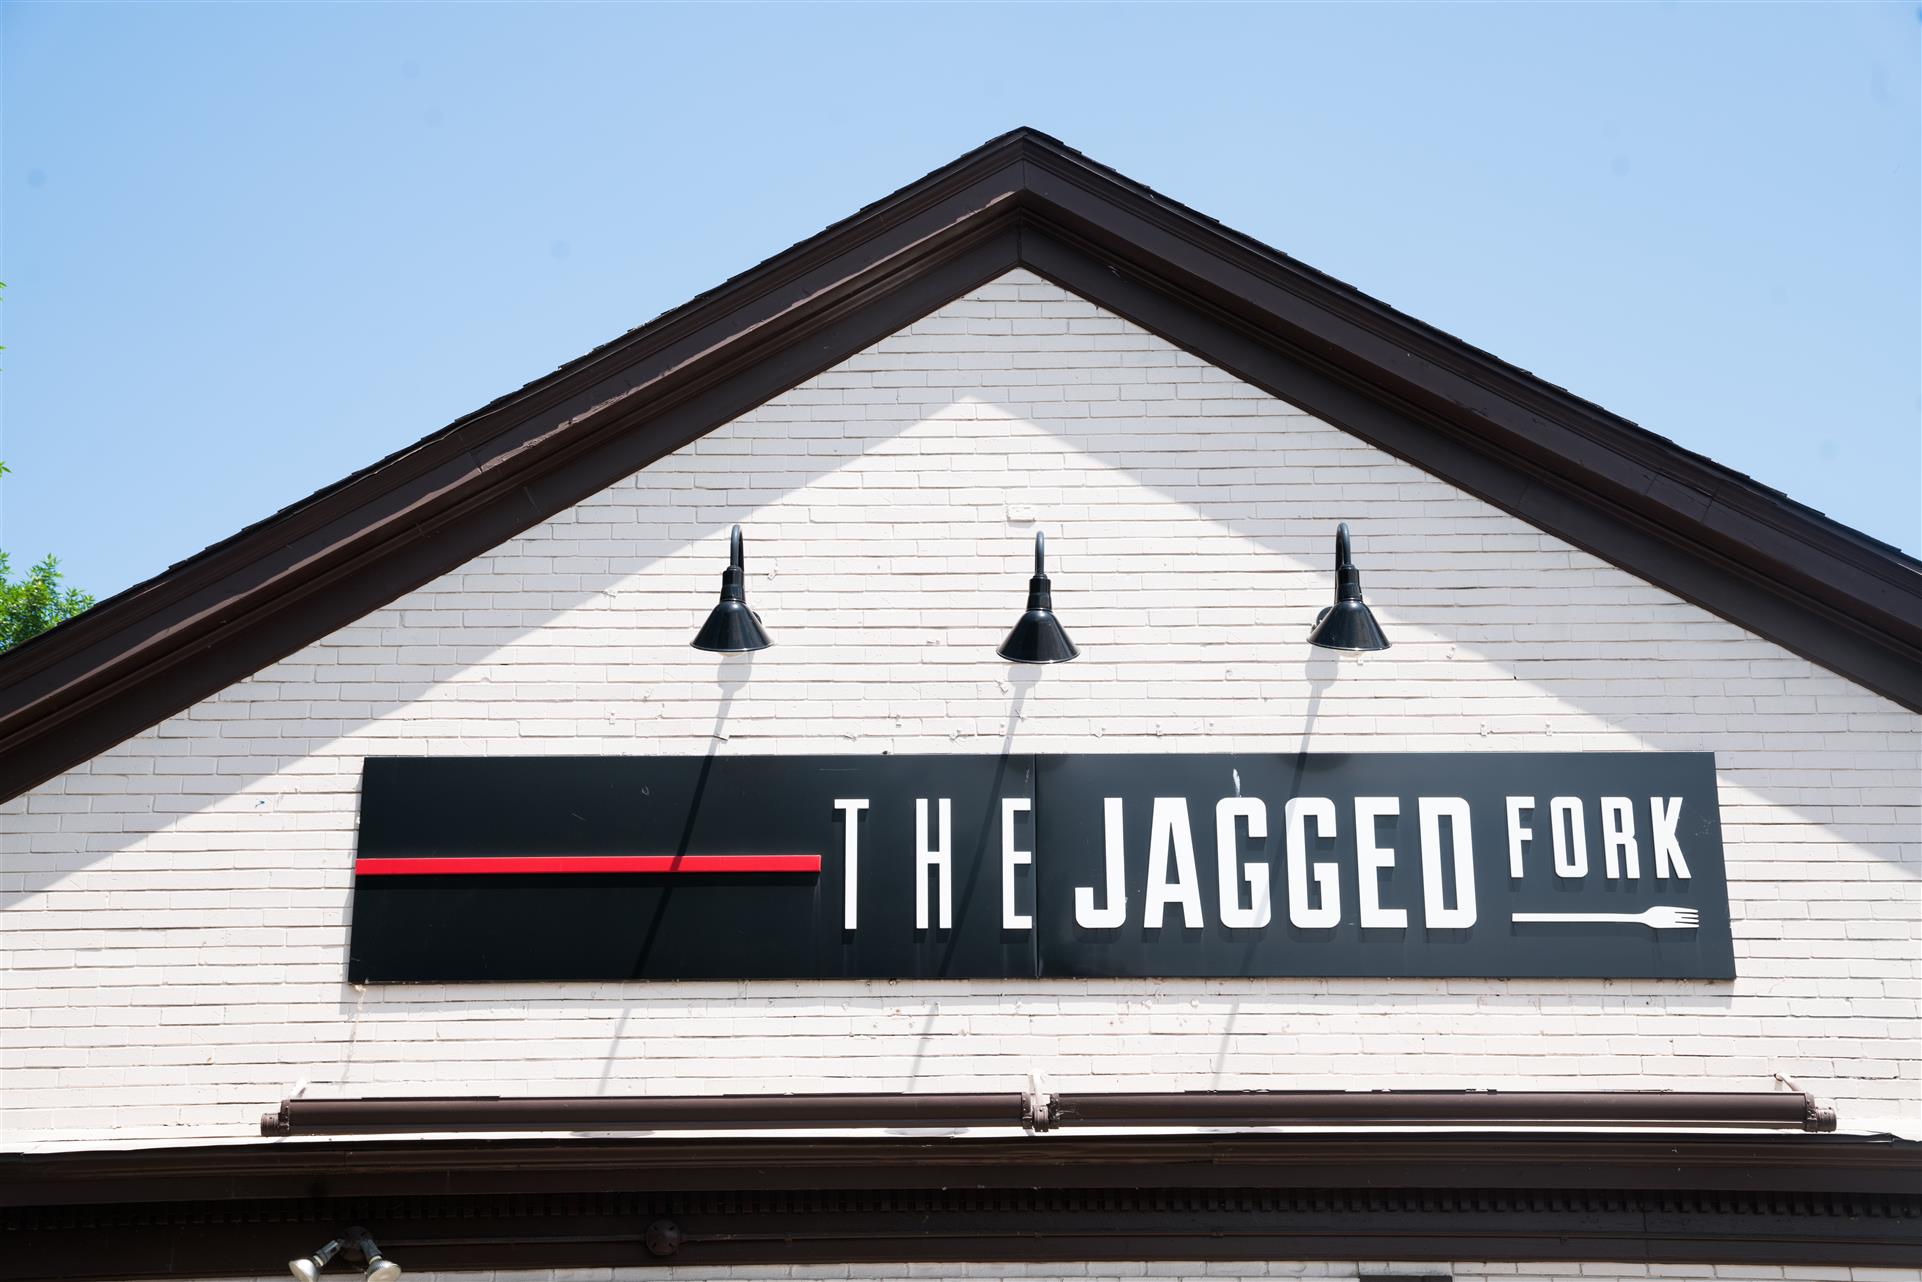 The Jagged Fork logo on a sign on the storefront